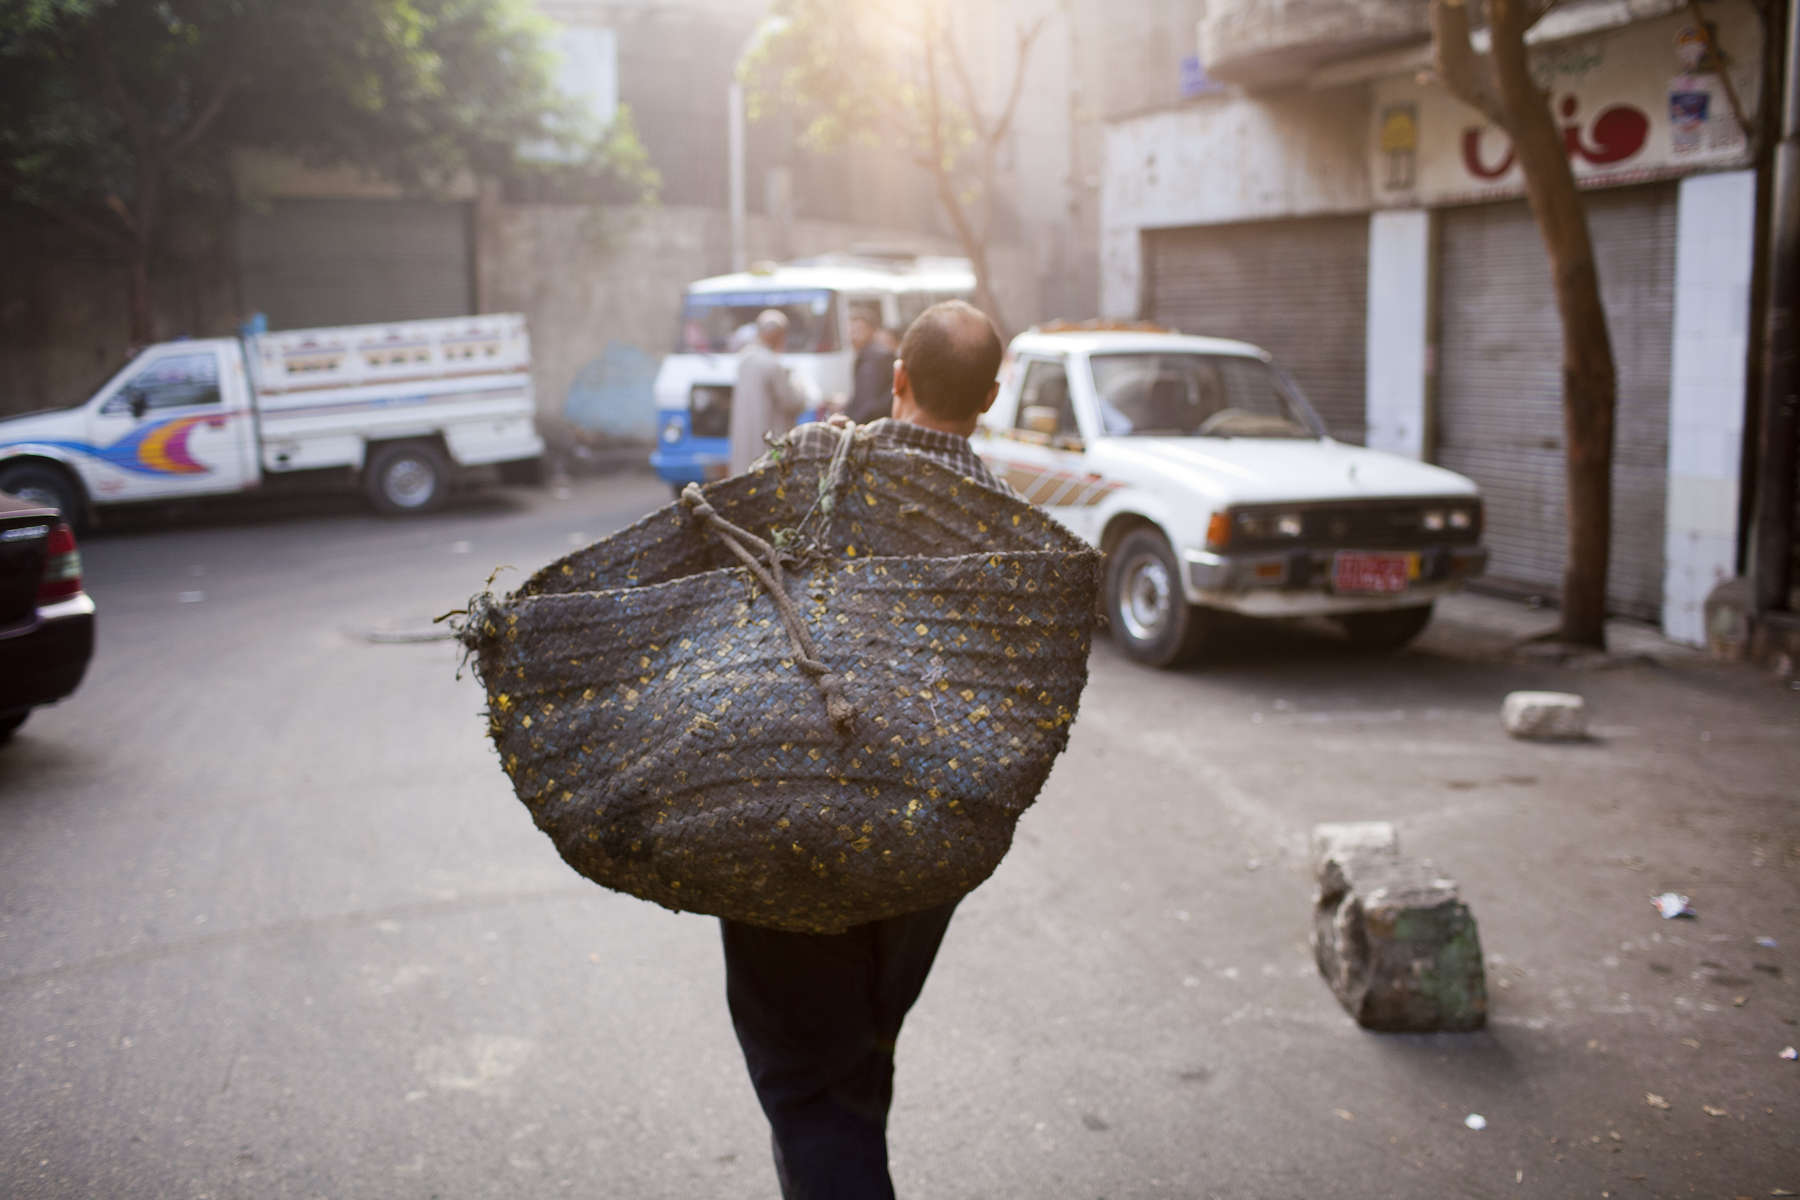 "A Zabaleen man collects garbage from a Cairo suburb before returnng from his shift to Moqqatam.Moqqatam is a suburb on the edge of Cairo and home to a people known as the Zabaleen, said to be the world's greatest waste recyclers. The Zabaleen, which means plainly enough, ""the garbage collectors"", pick up around 4,000 tons of Cairo's waste each day. American researchers have shown that the Zabaleen recycle 85% of this garbage into something useful: a higher rate than anywhere else on the planet. The men do two shifts leaving about 4am and again around 9am. The rubbish is taken back to Moqqatam for the women to sit in and sort through. The organic waste is fed to livestock (the Zabaleen are originally swine herders), the rest sorted for recycling. The future of the Zabaleen is uncertain: if the Cairo authorities get their way, this community of around 25,000 Coptic Christians living in a Muslim country will be gone, and with it, their unique lifestyle."